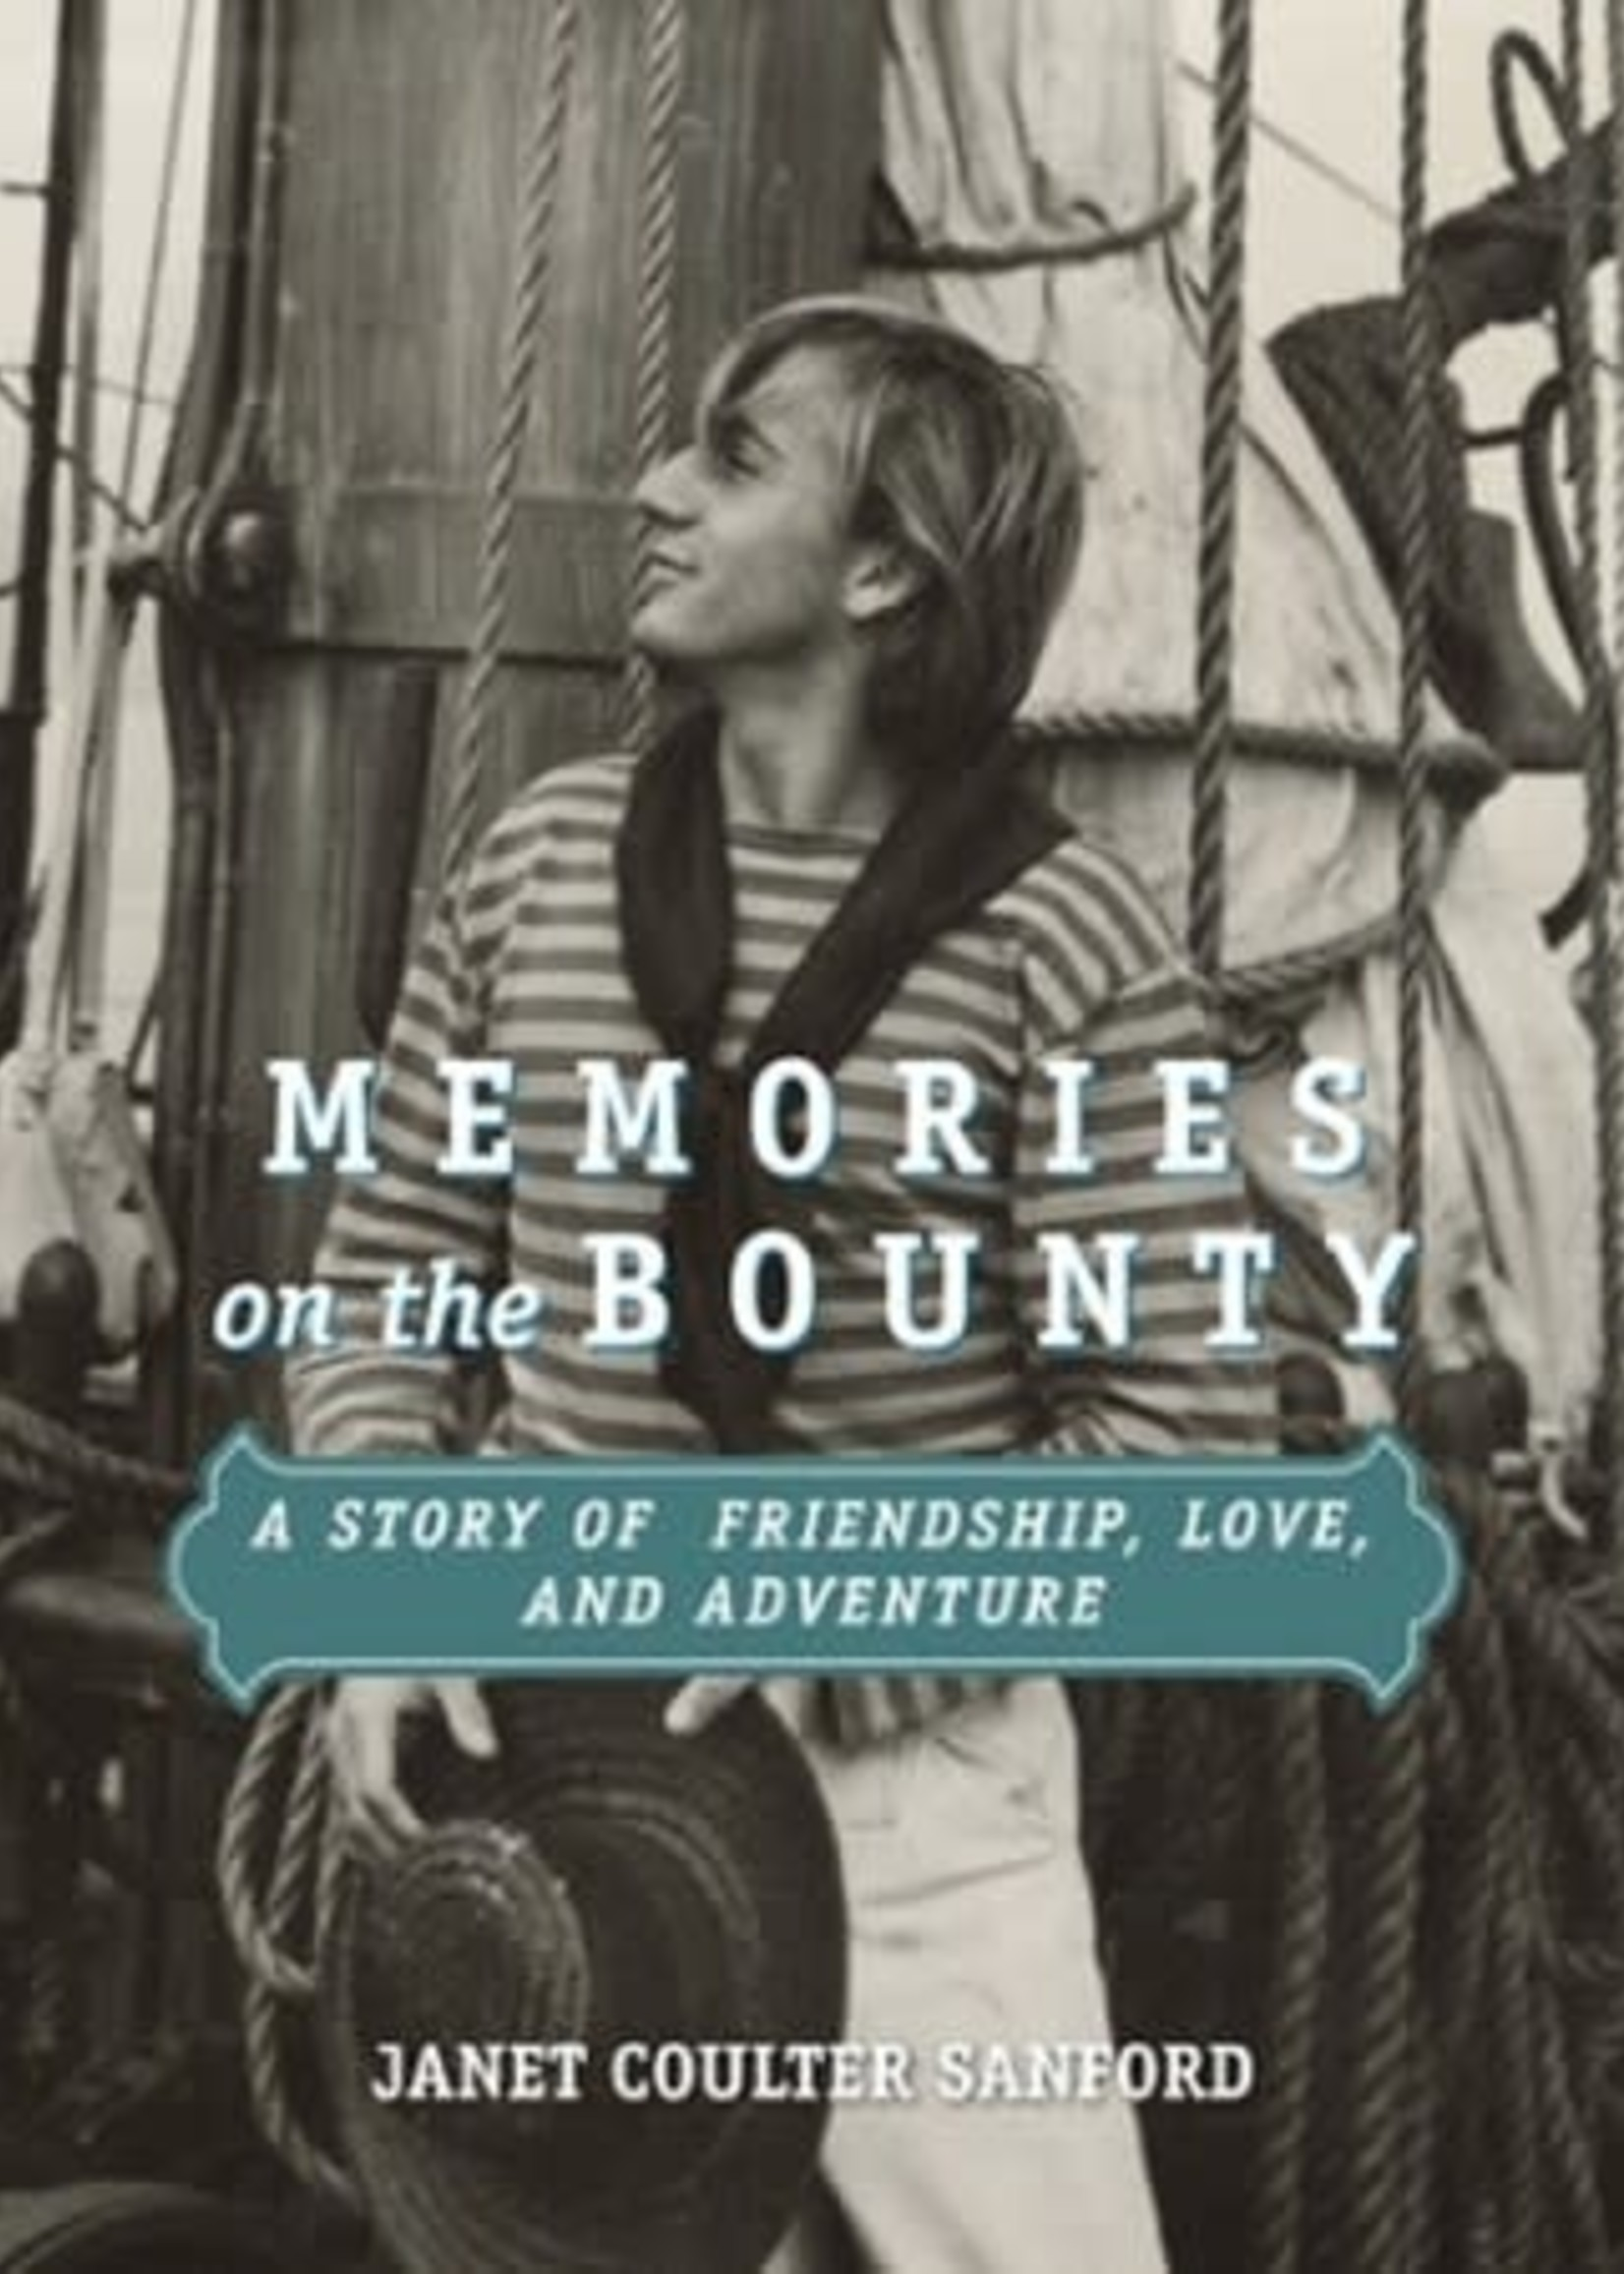 Memories on the Bounty: A Story of Friendship, Love, and Adventure by Janet Coulter Sanford